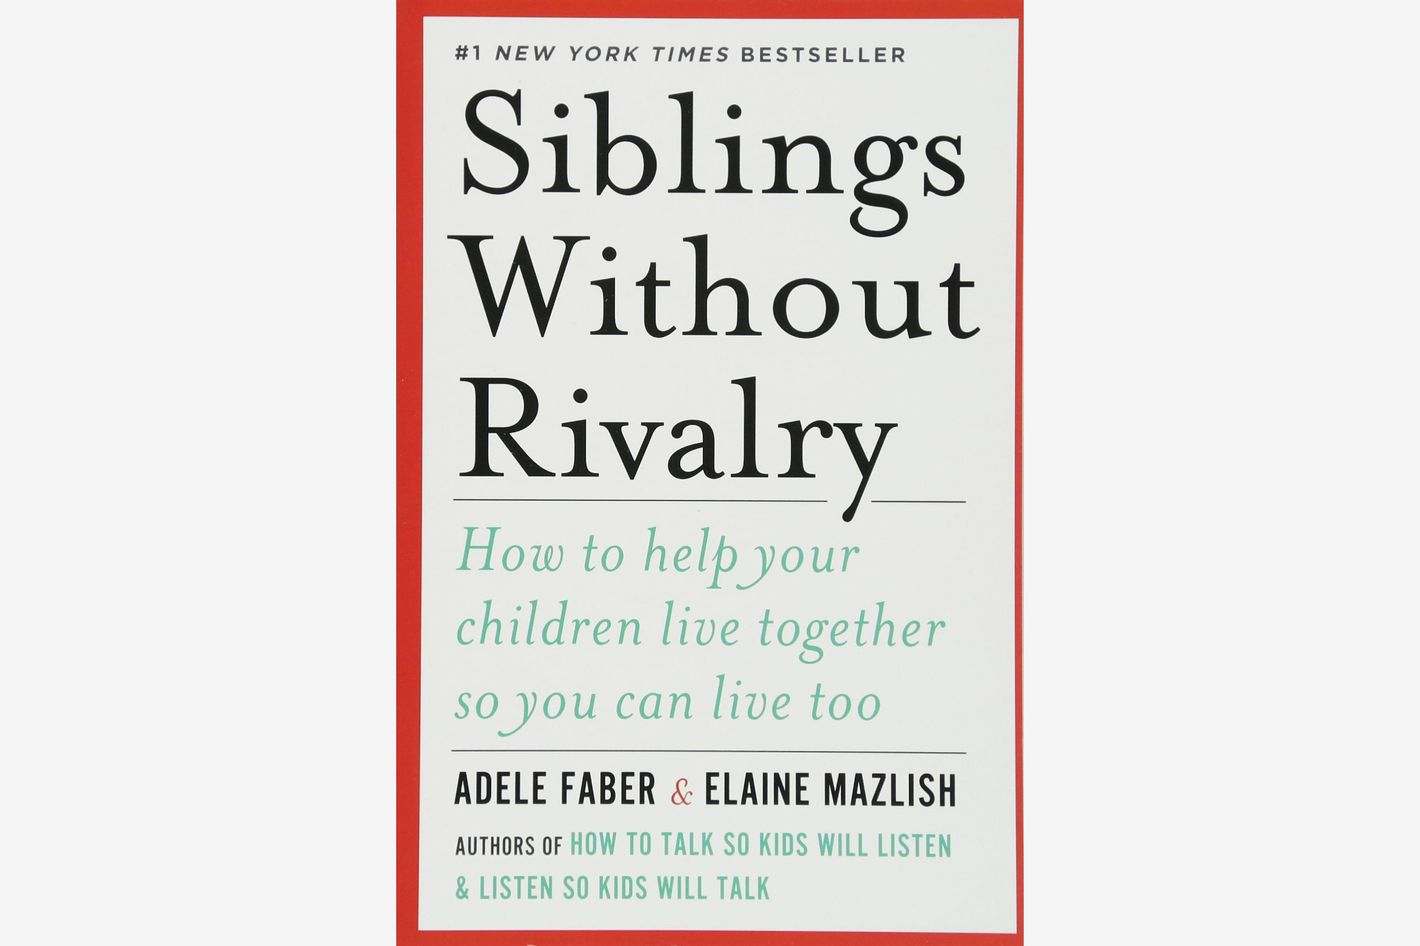 <em>Siblings Without Rivalry: How to Help Your Children Live Together So You Can Live Too</em>, by Adele Faber and Elaine Mazlish